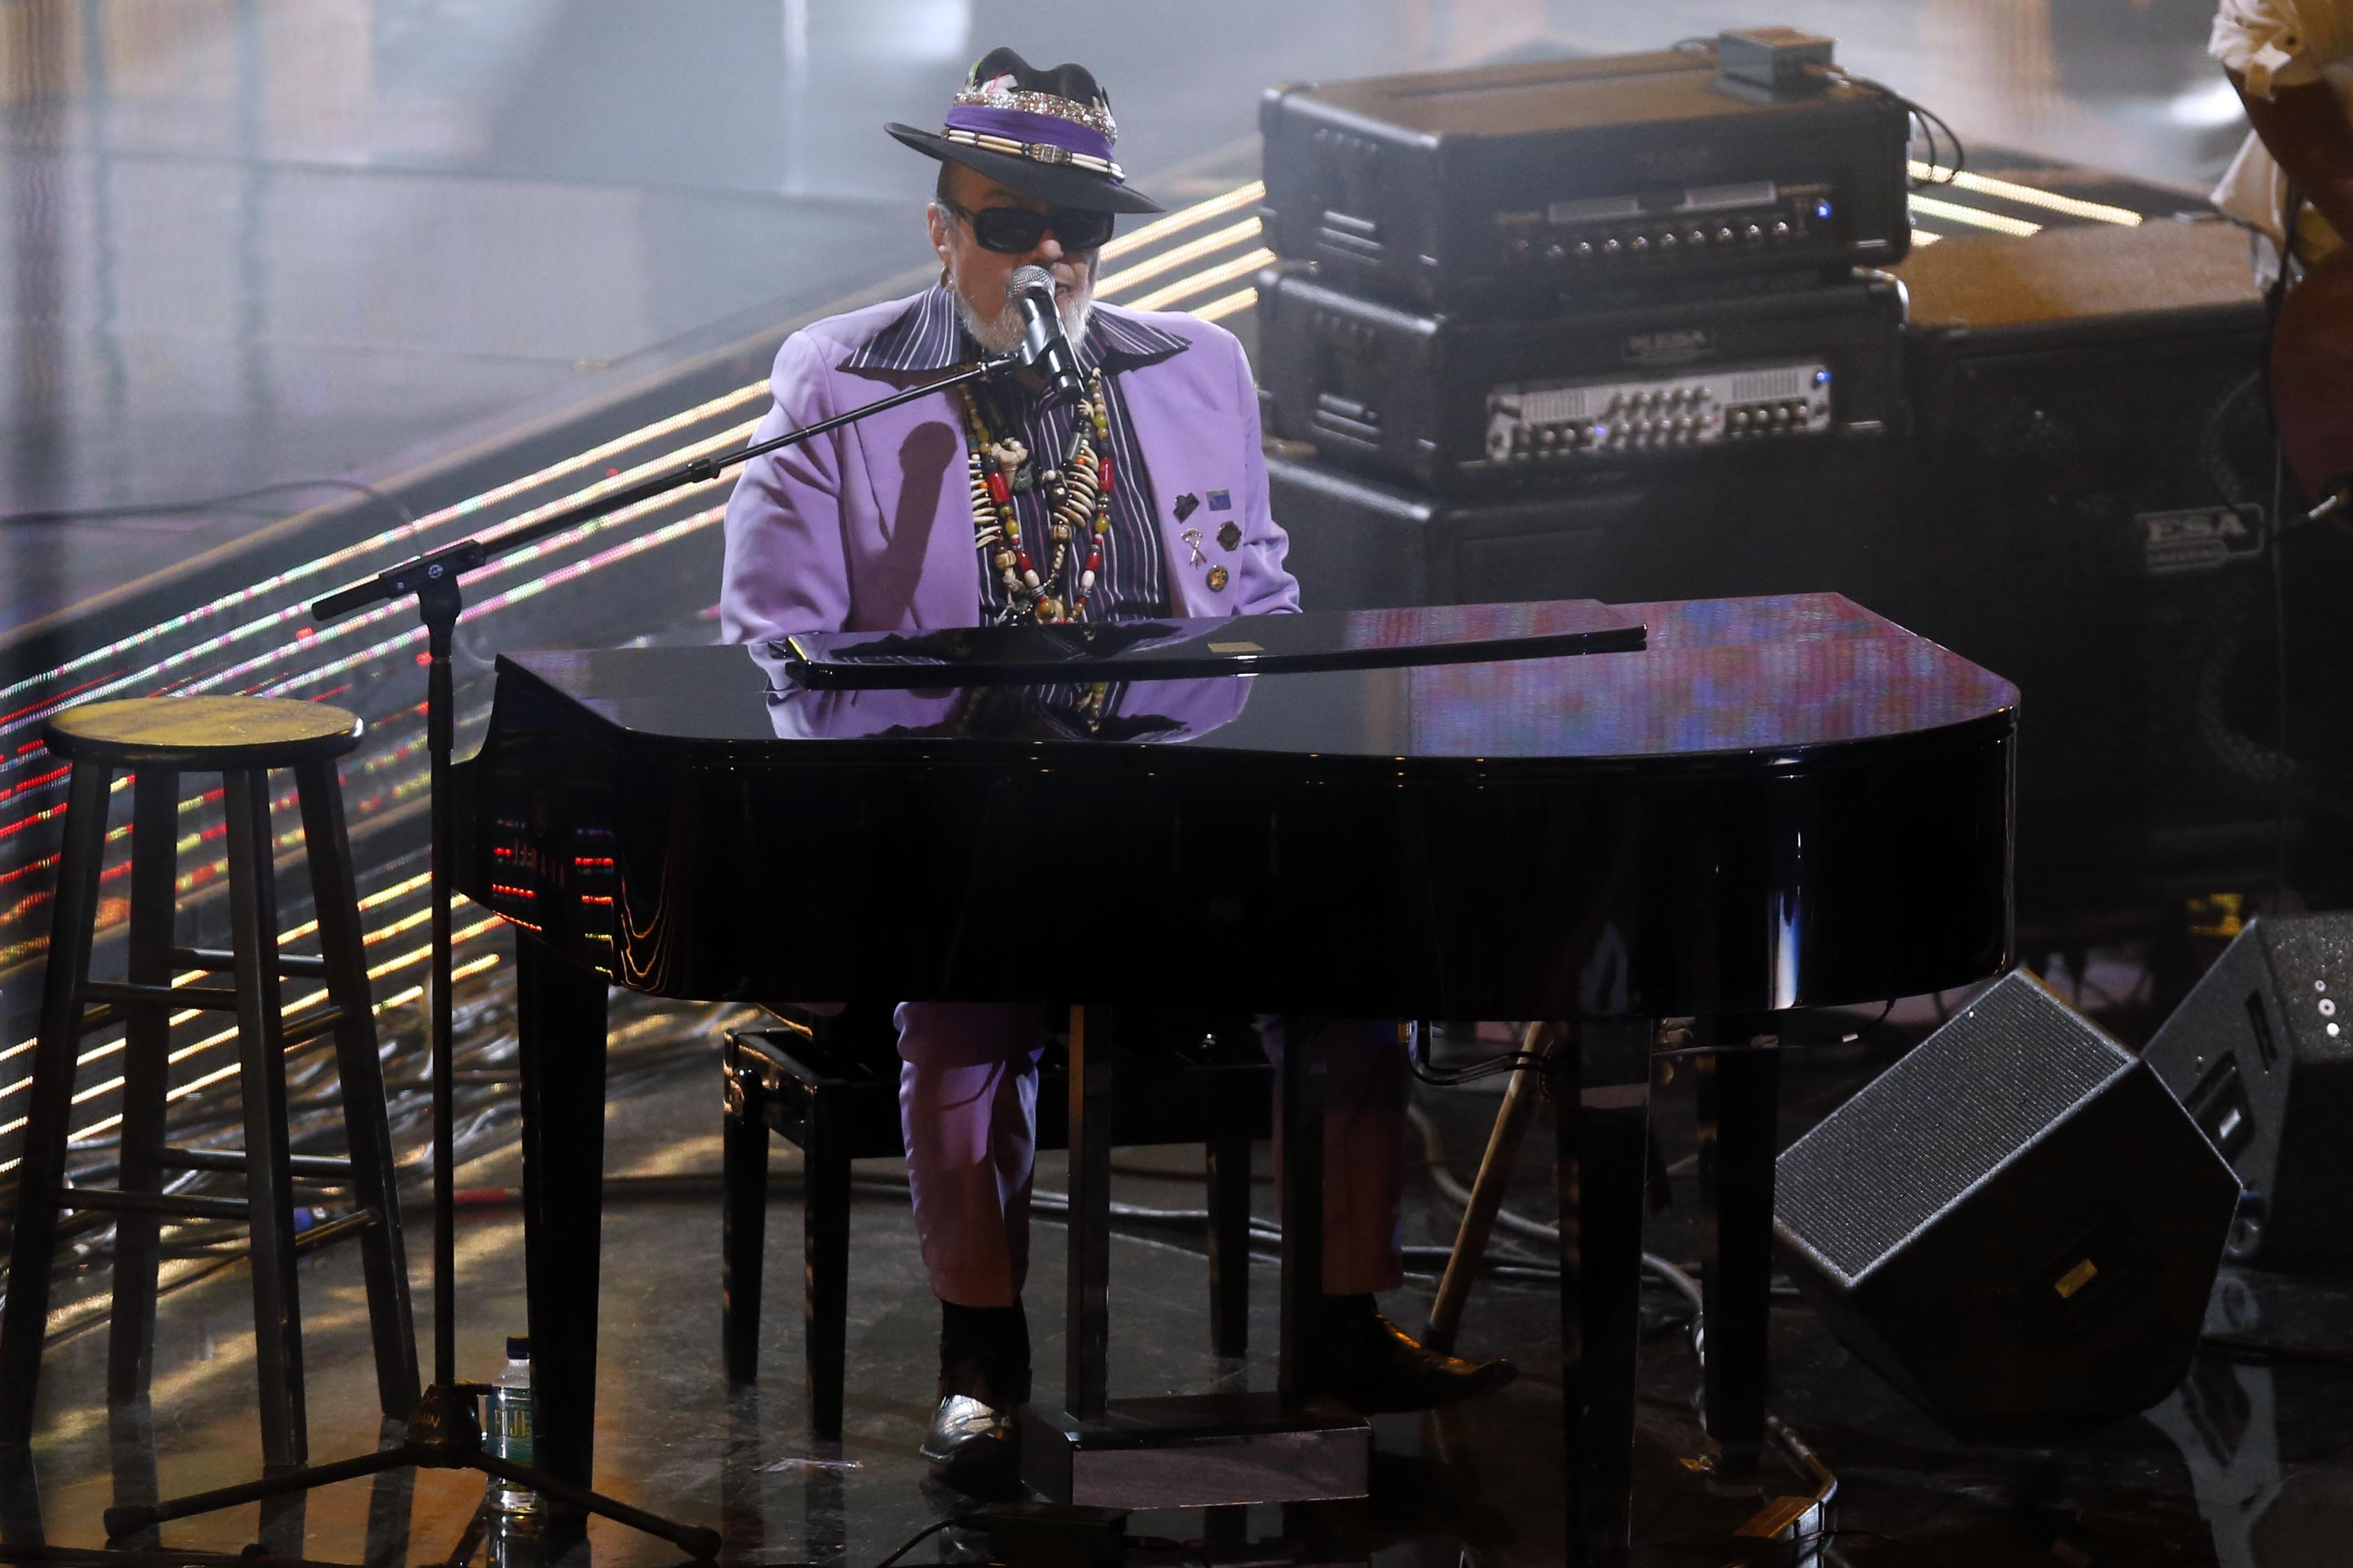 On Feb 16, 2014, in New Orleans, Dr. John performs during halftime of the 2014 NBA All-Star Game.